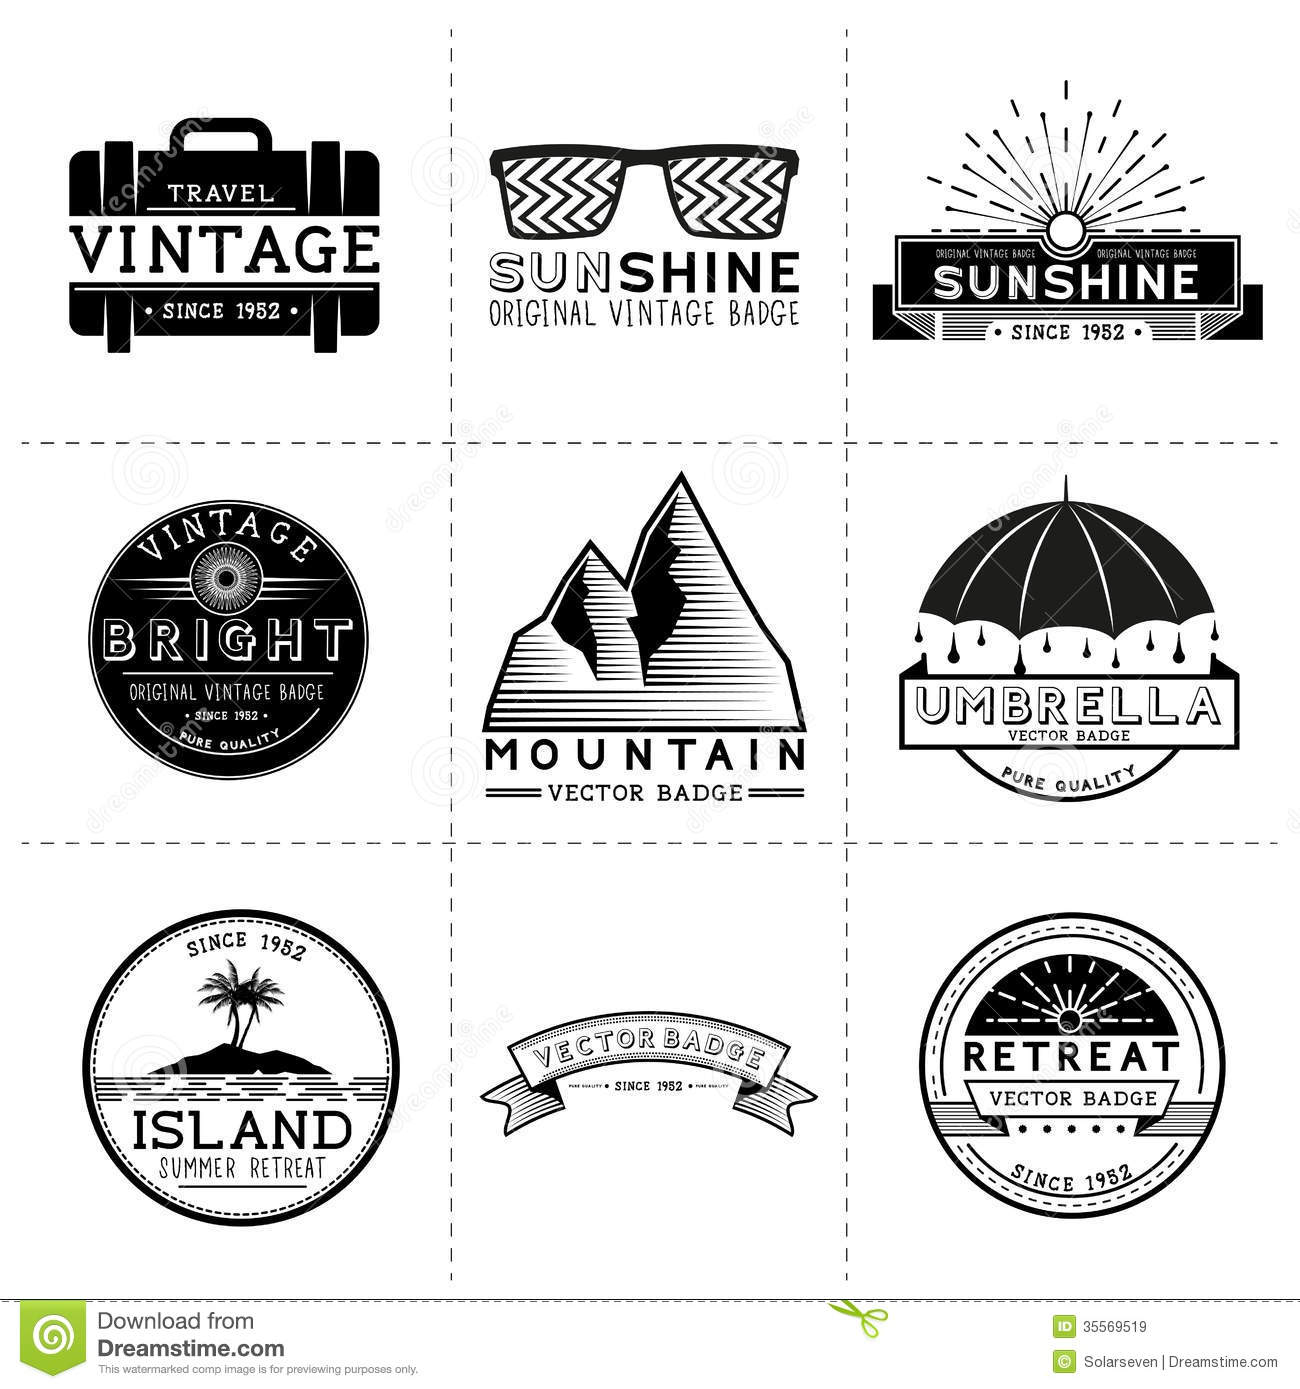 vintage travel clipart black and white - photo #31